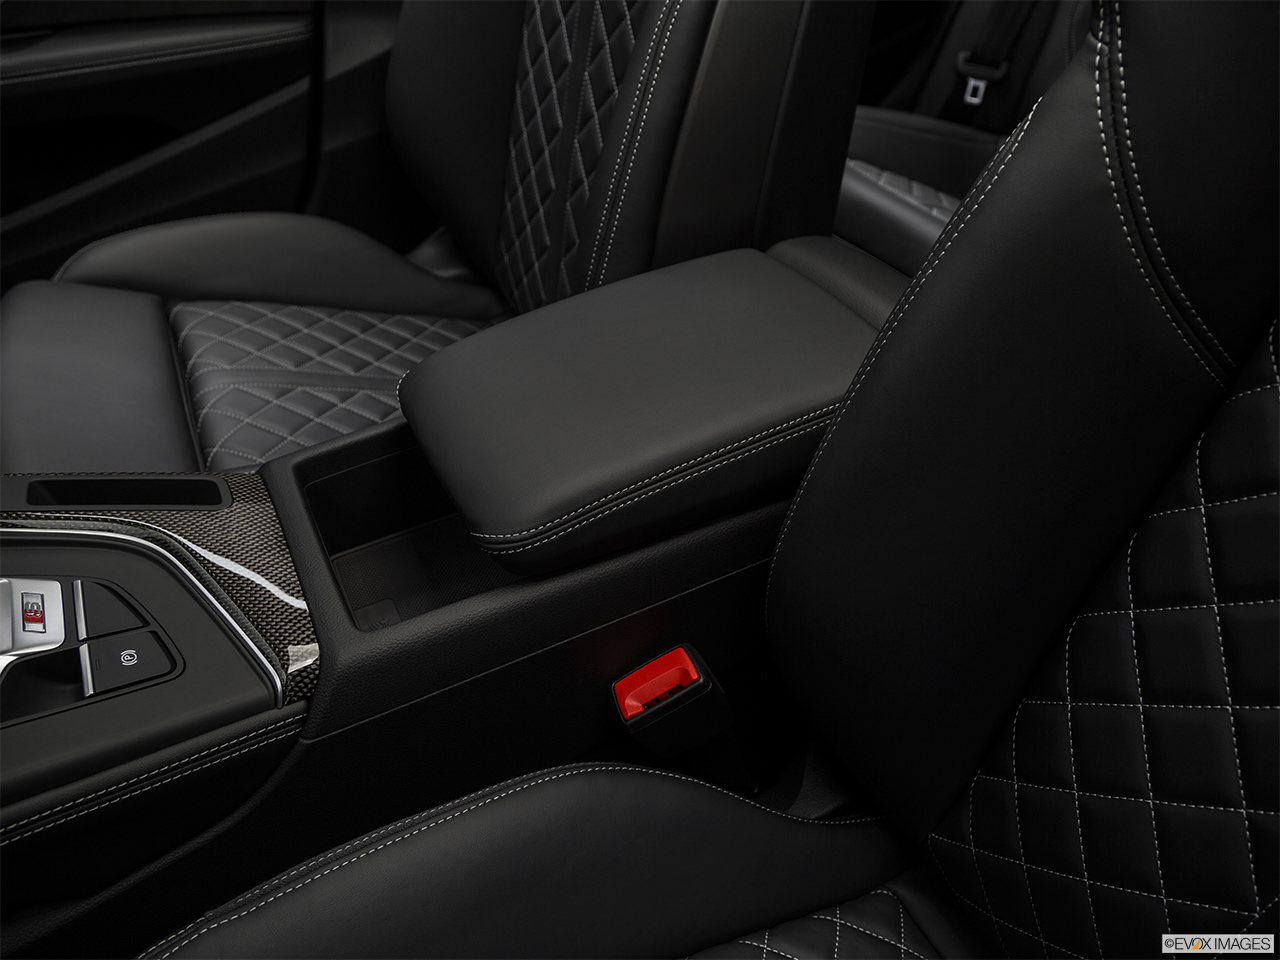 2019 Audi S5 Sportback Premium Plus 3.0 TFSI Front center console with closed lid, from driver's side looking down